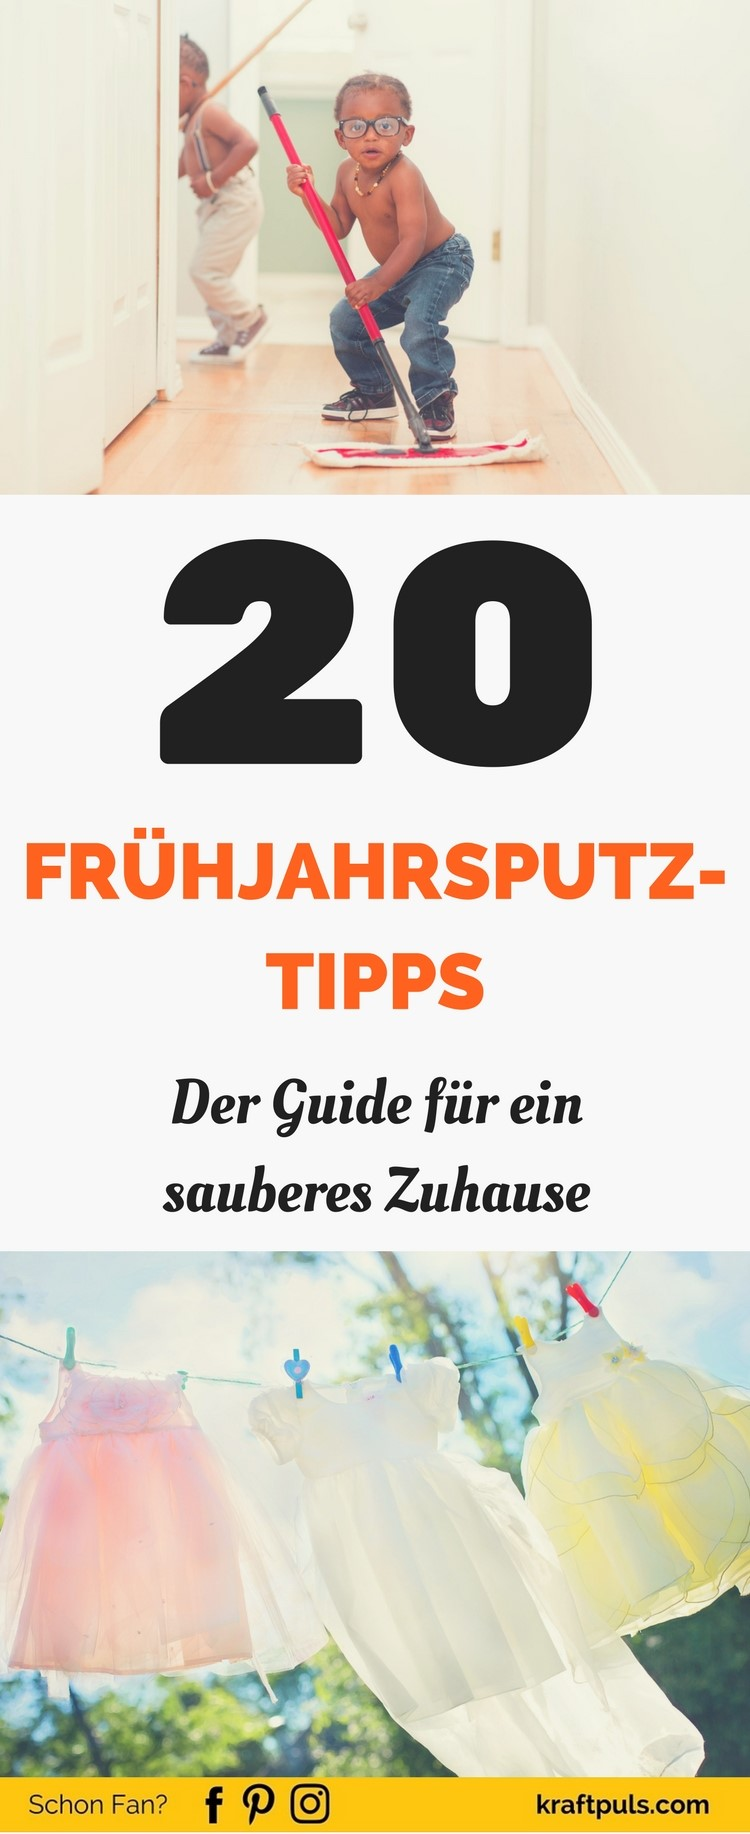 20 fr hjahrsputz tipps der guide f r ein sauberes zuhause kraftpuls. Black Bedroom Furniture Sets. Home Design Ideas